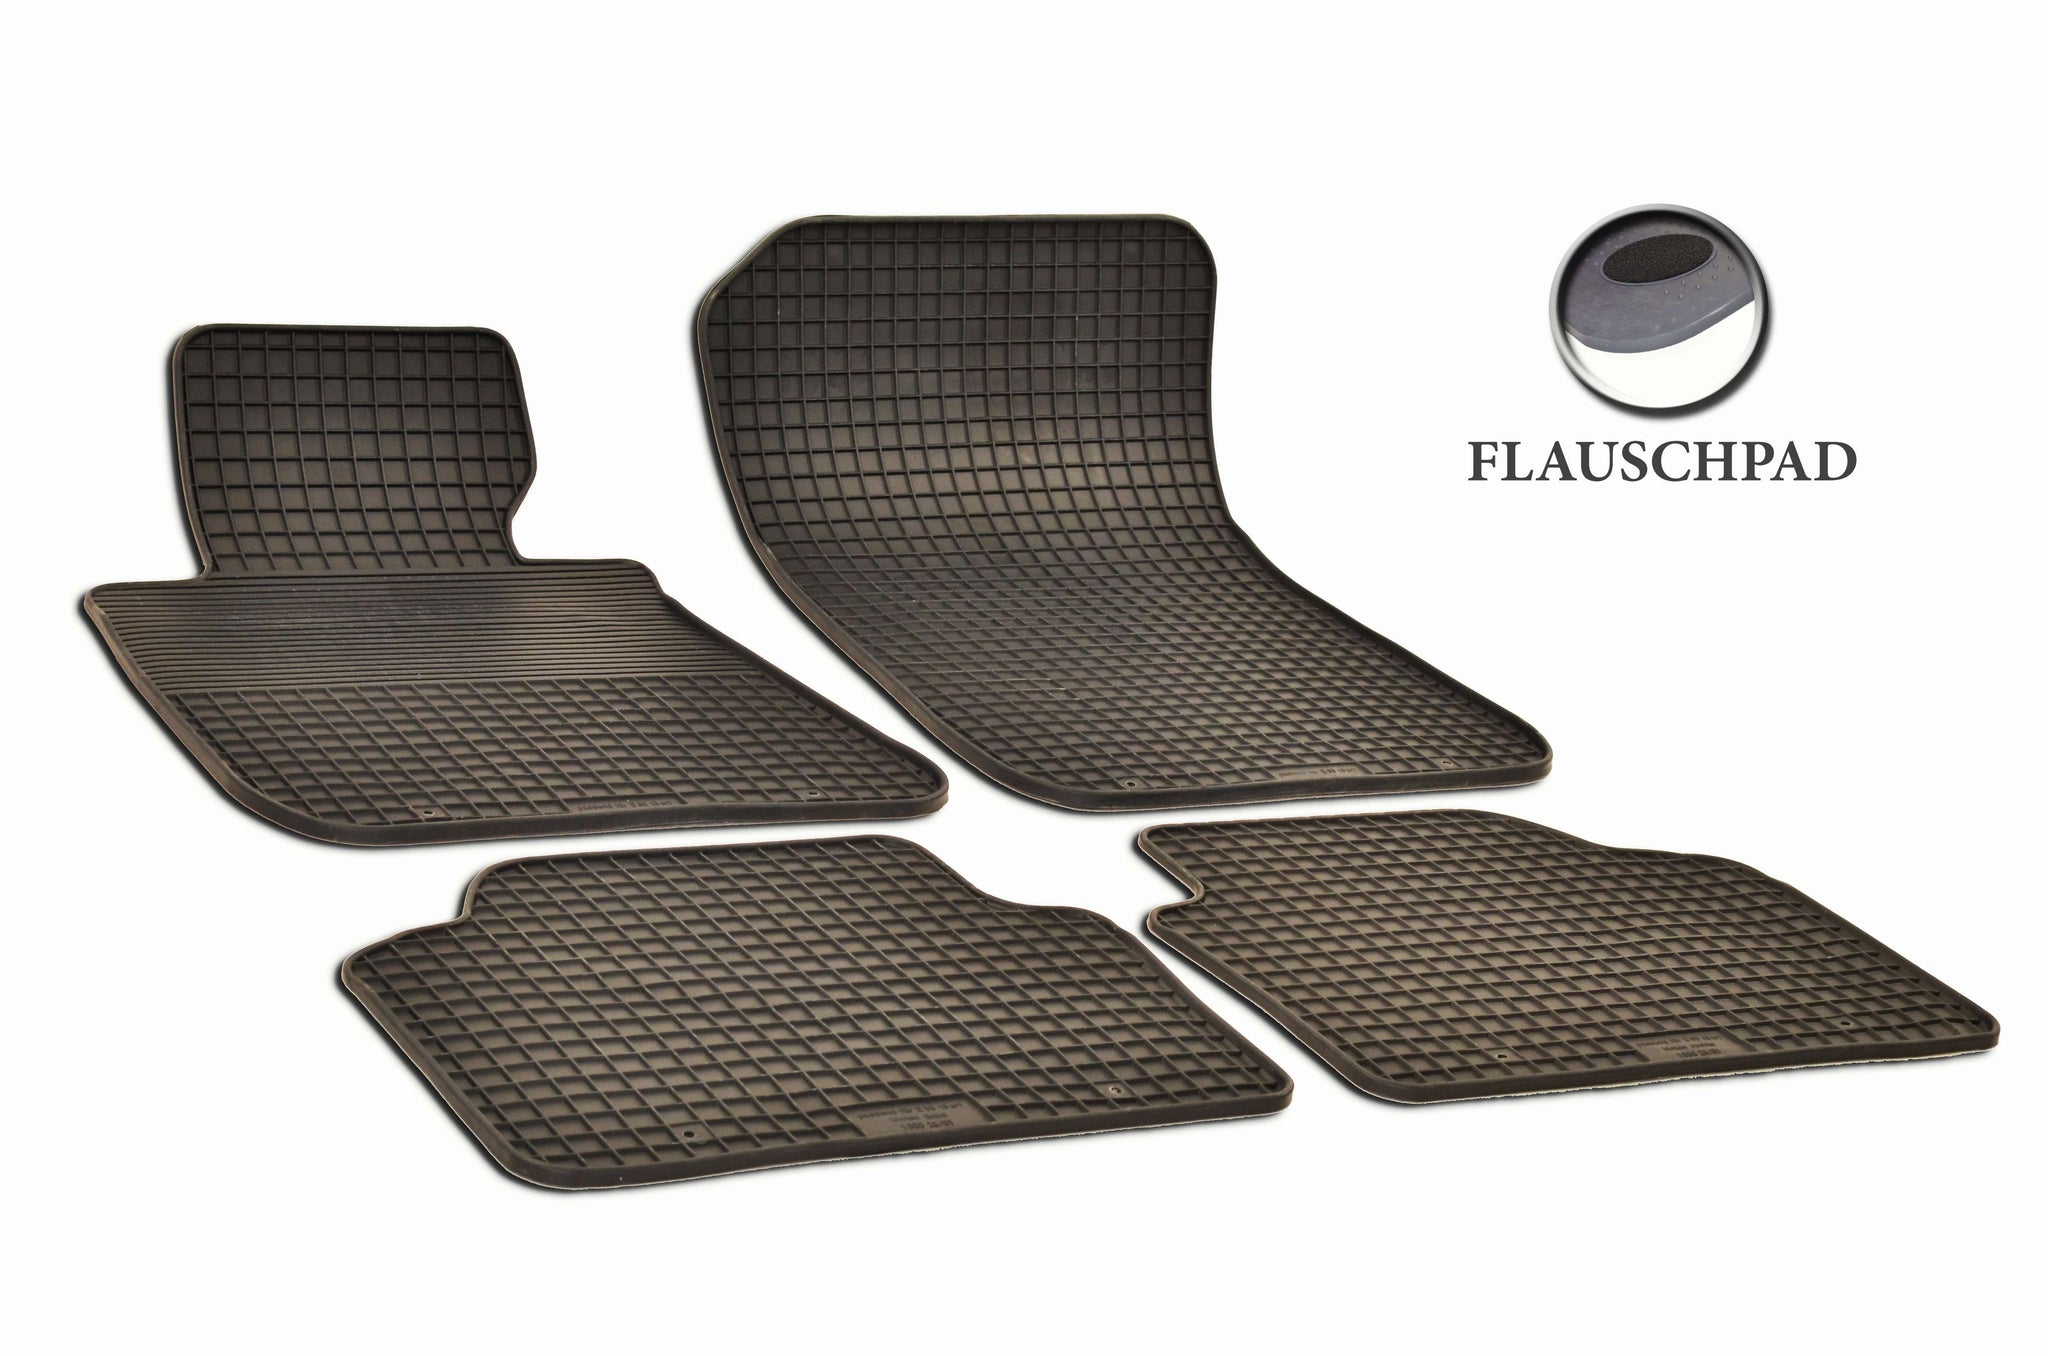 BMW 328i 2011 Sedan E90 Set of 4 Black Rubber OE Fit All Weather Car Floor Mats